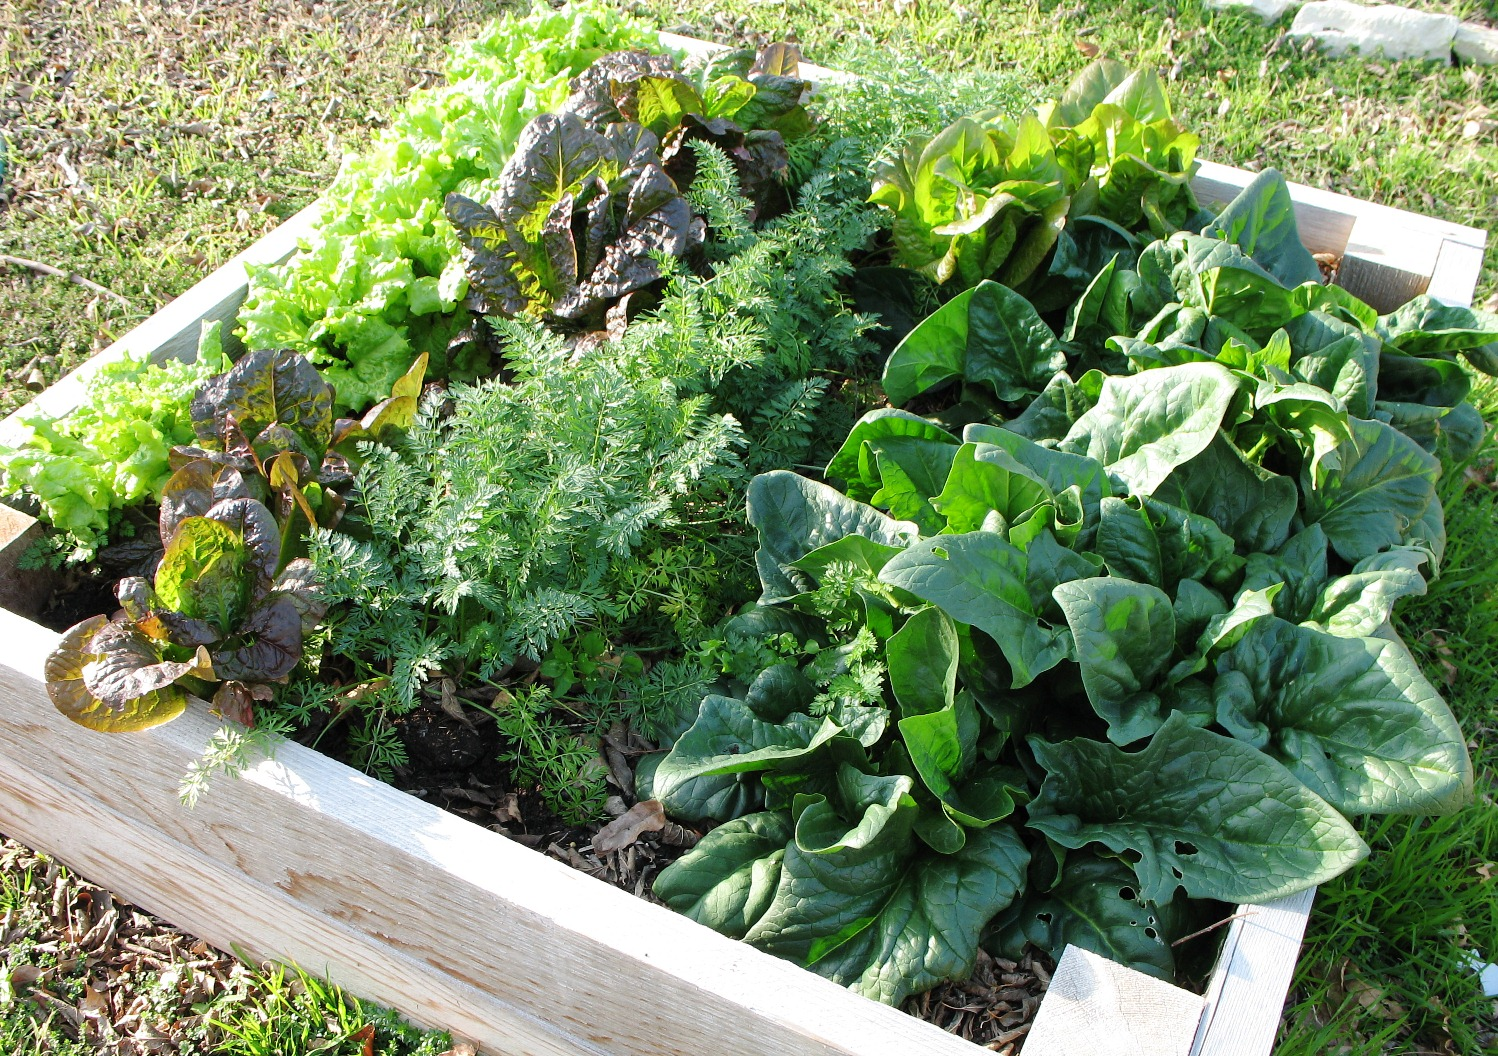 Growing Vegetables In Containers 15 ideal vegetables that grow well in a pot or container the self broccoli and cabbage these are the easiest vegetables to grow in containers however you should not plant lot of types in a single pot otherwise workwithnaturefo